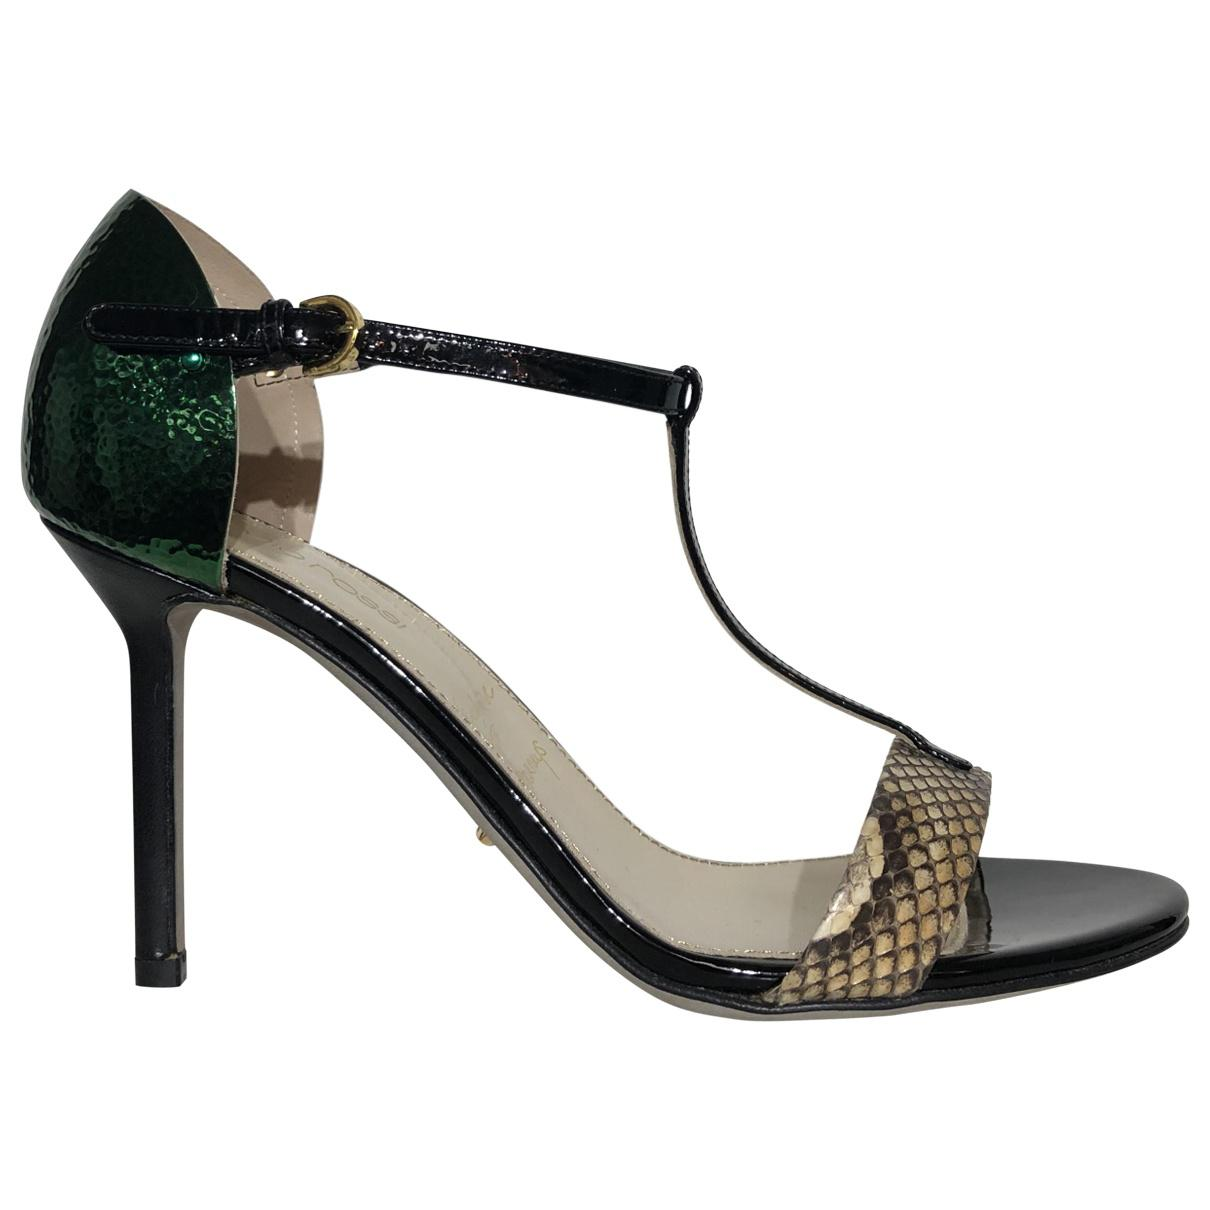 Pre-owned - Python sandals Sergio Rossi xvKCdUFg